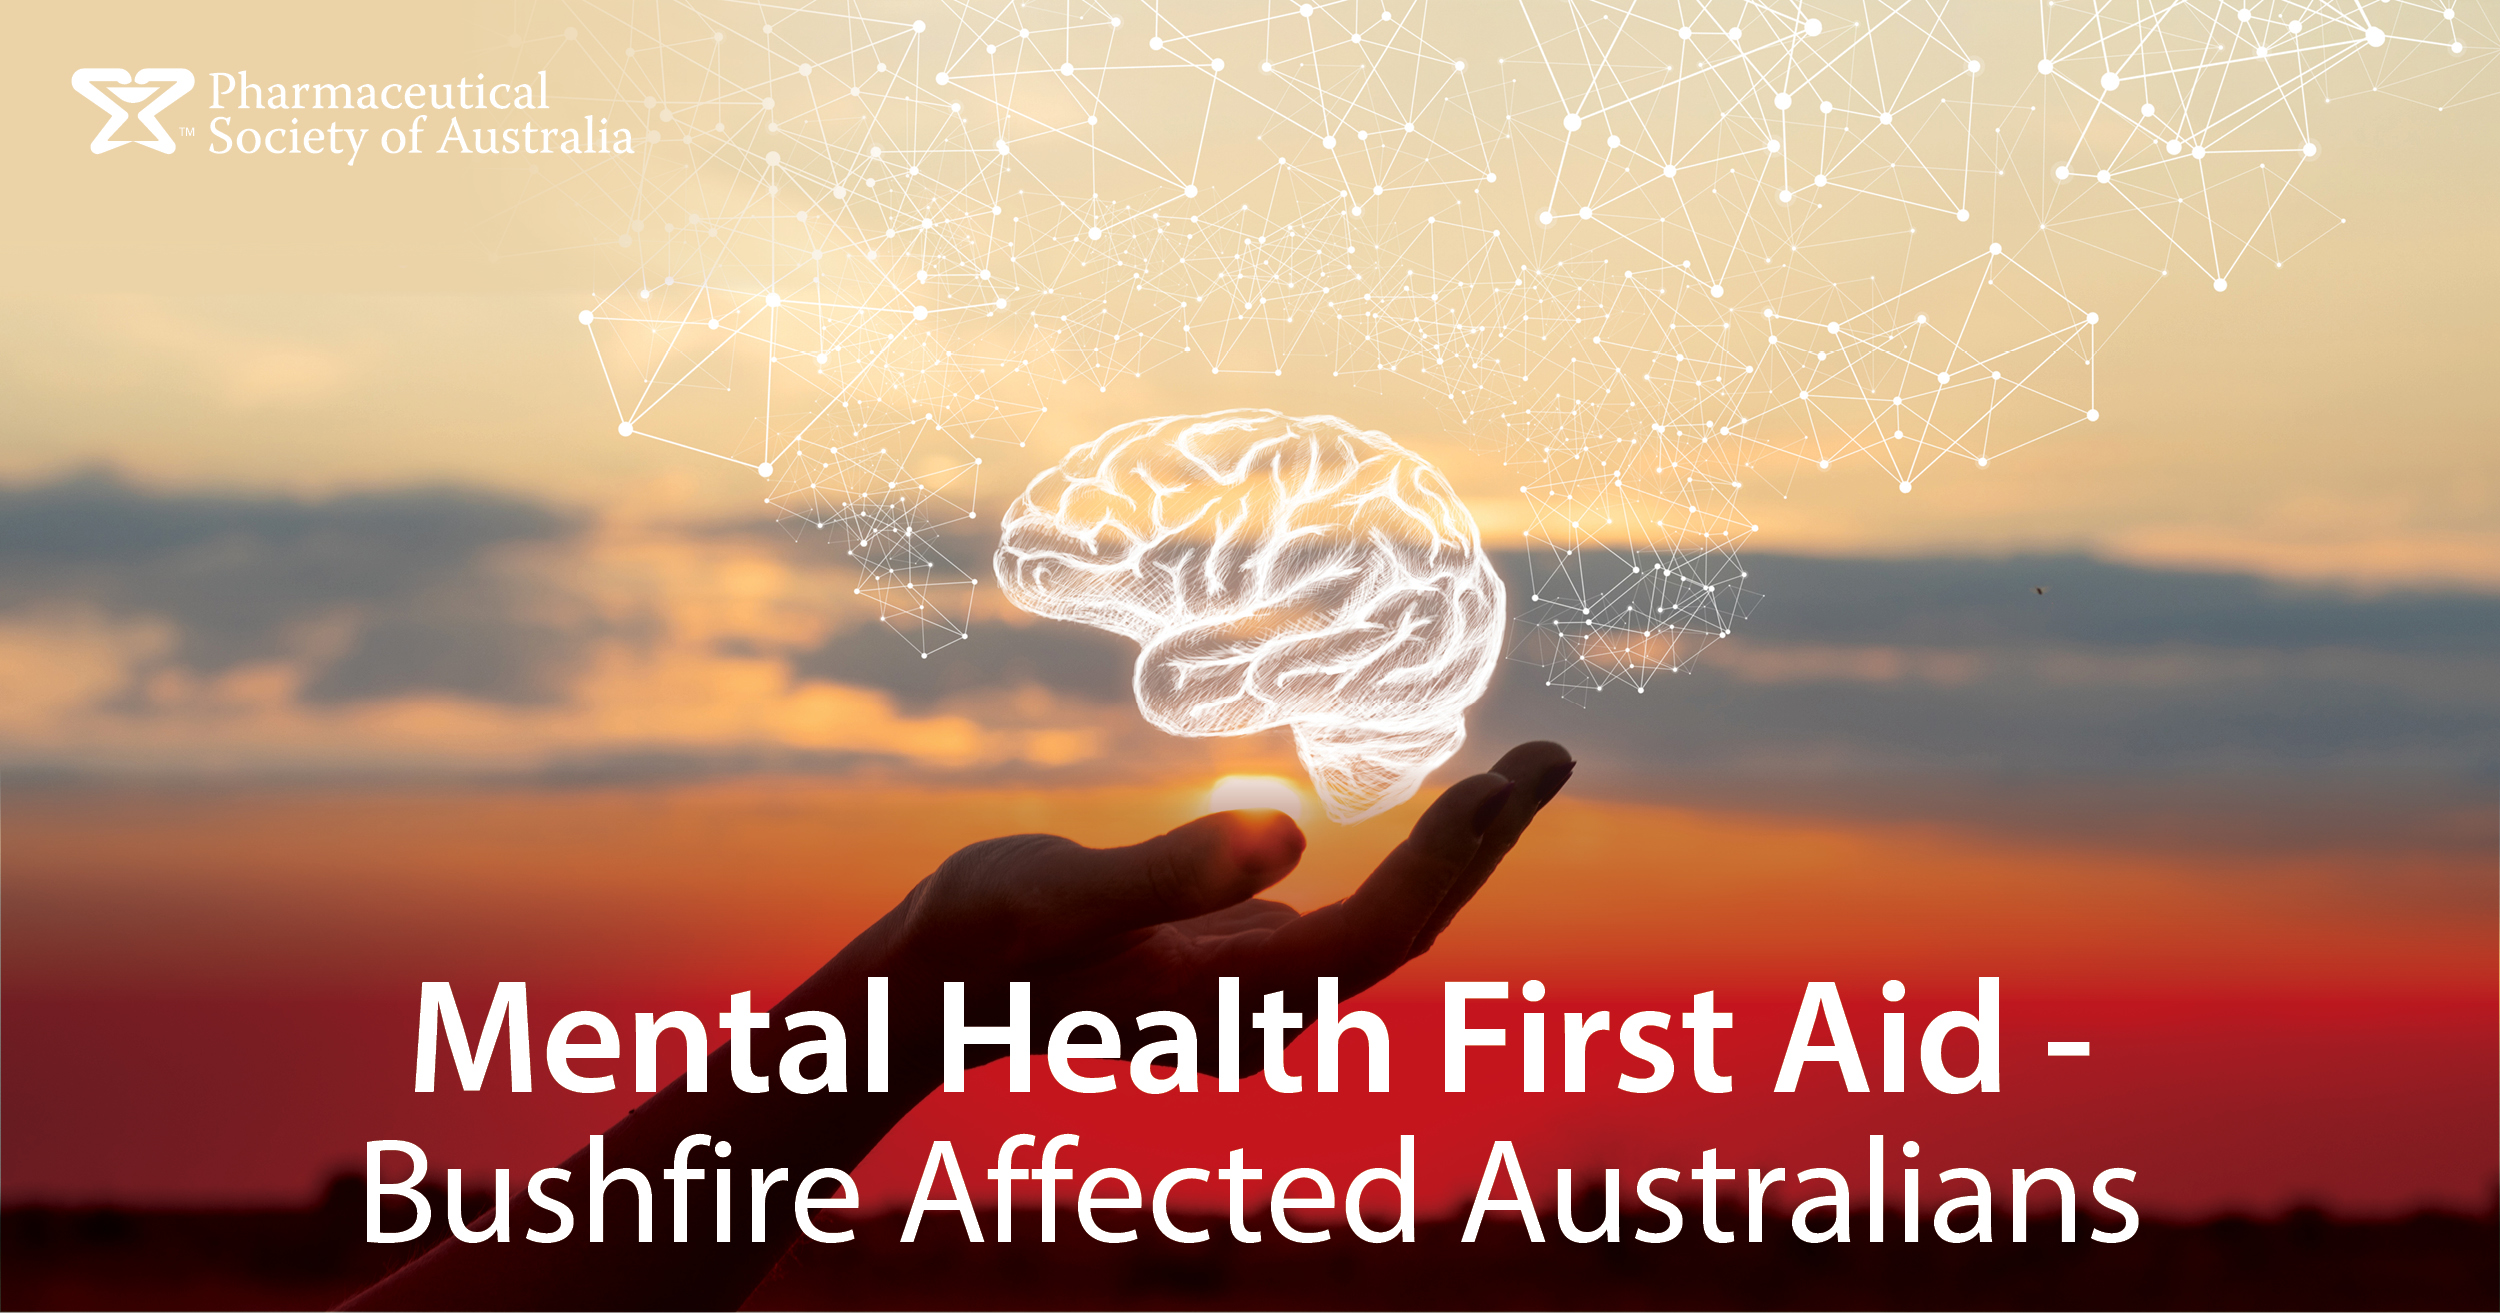 Mental Health First Aid training for pharmacy in bushfire-affected communities